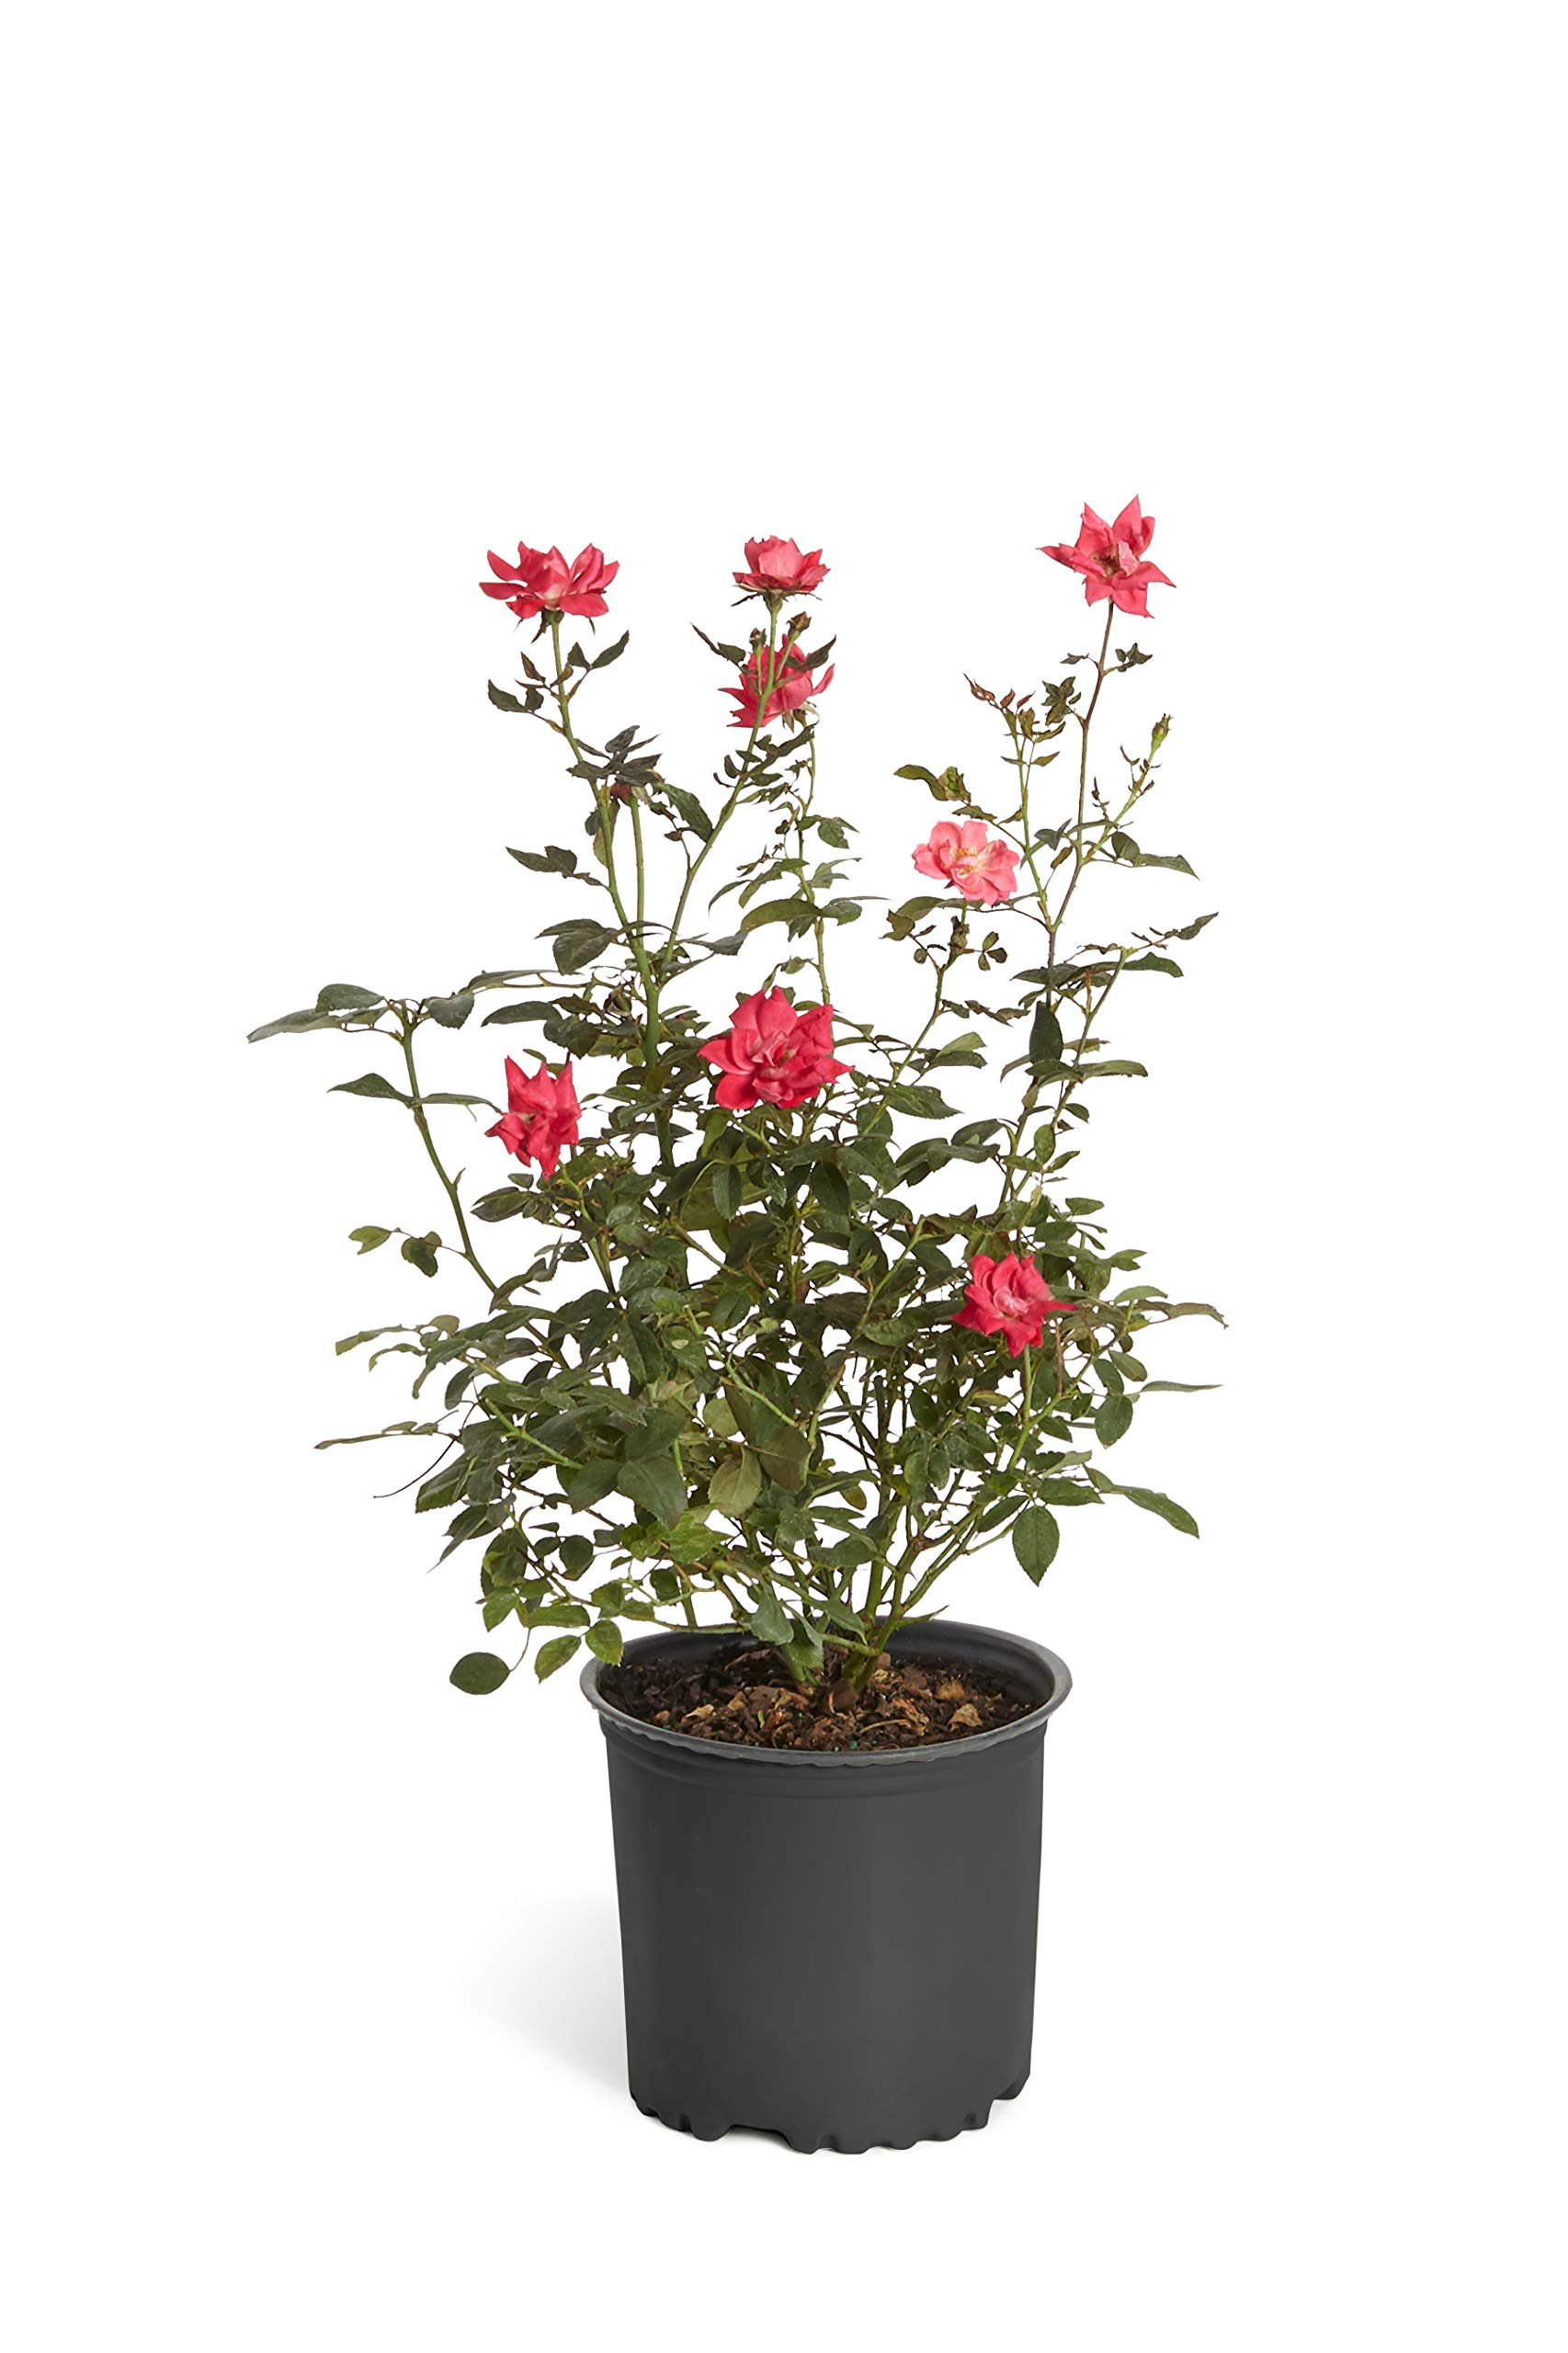 Double Knock Out Rose Bush- Large, Developed Plants for Instant Blooms- Not Tiny Quarts, Seedlings, or Seeds. Enjoy Blooms The First Year with These Large Shrubs with Double-Red Blooms - 1 Gallon